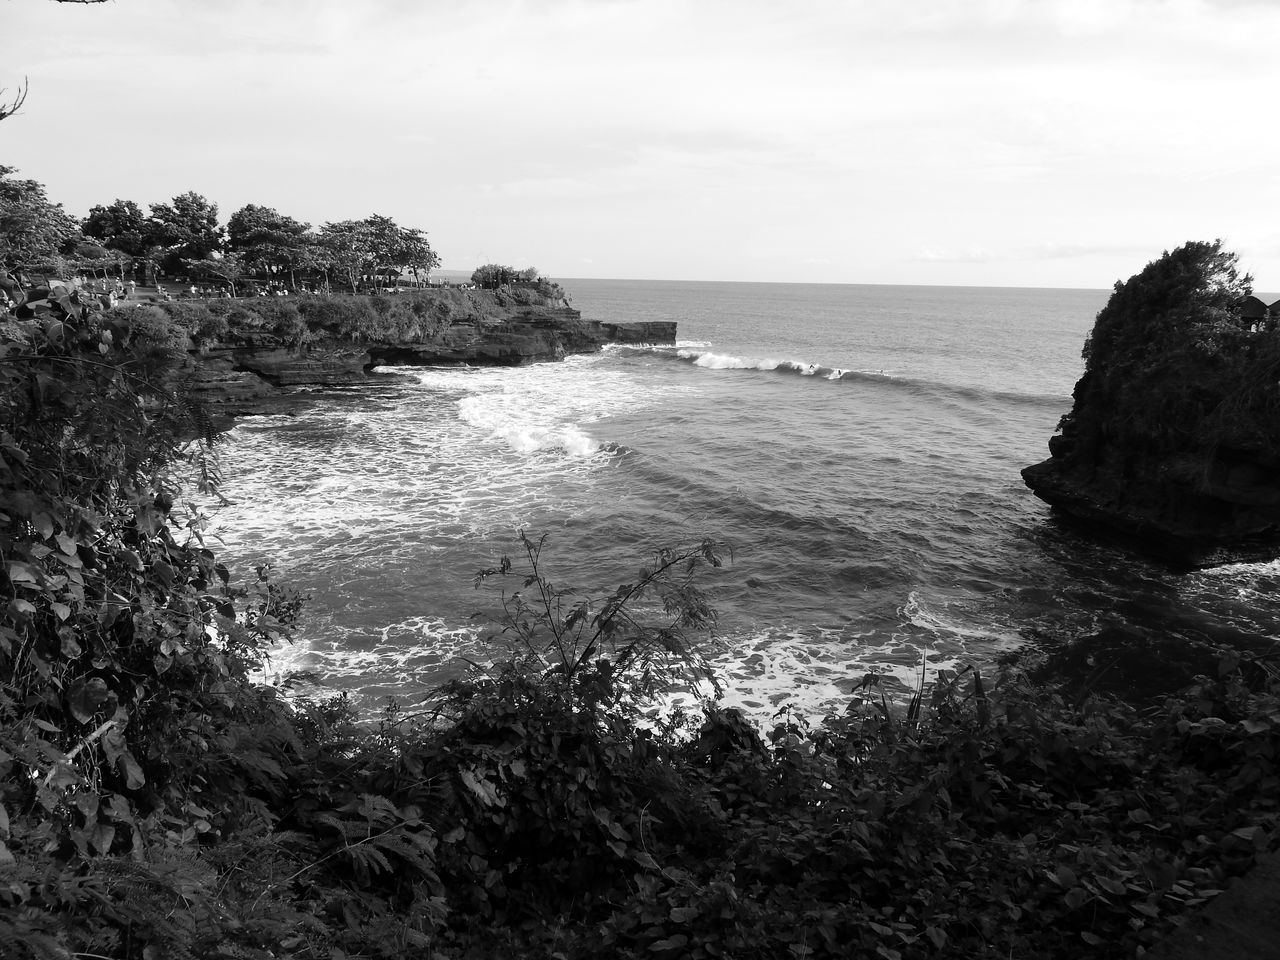 Tabanan [BW] Bali ~ Bali Bay Beach Beauty In Nature Blackandwhite Day Nature No People Ocean View Outdoors Paradise Scenics Sea Sky Solitary Surfing Tanah Lot Tranquility Water Waves Waves Rolling In Waves, Ocean, Nature